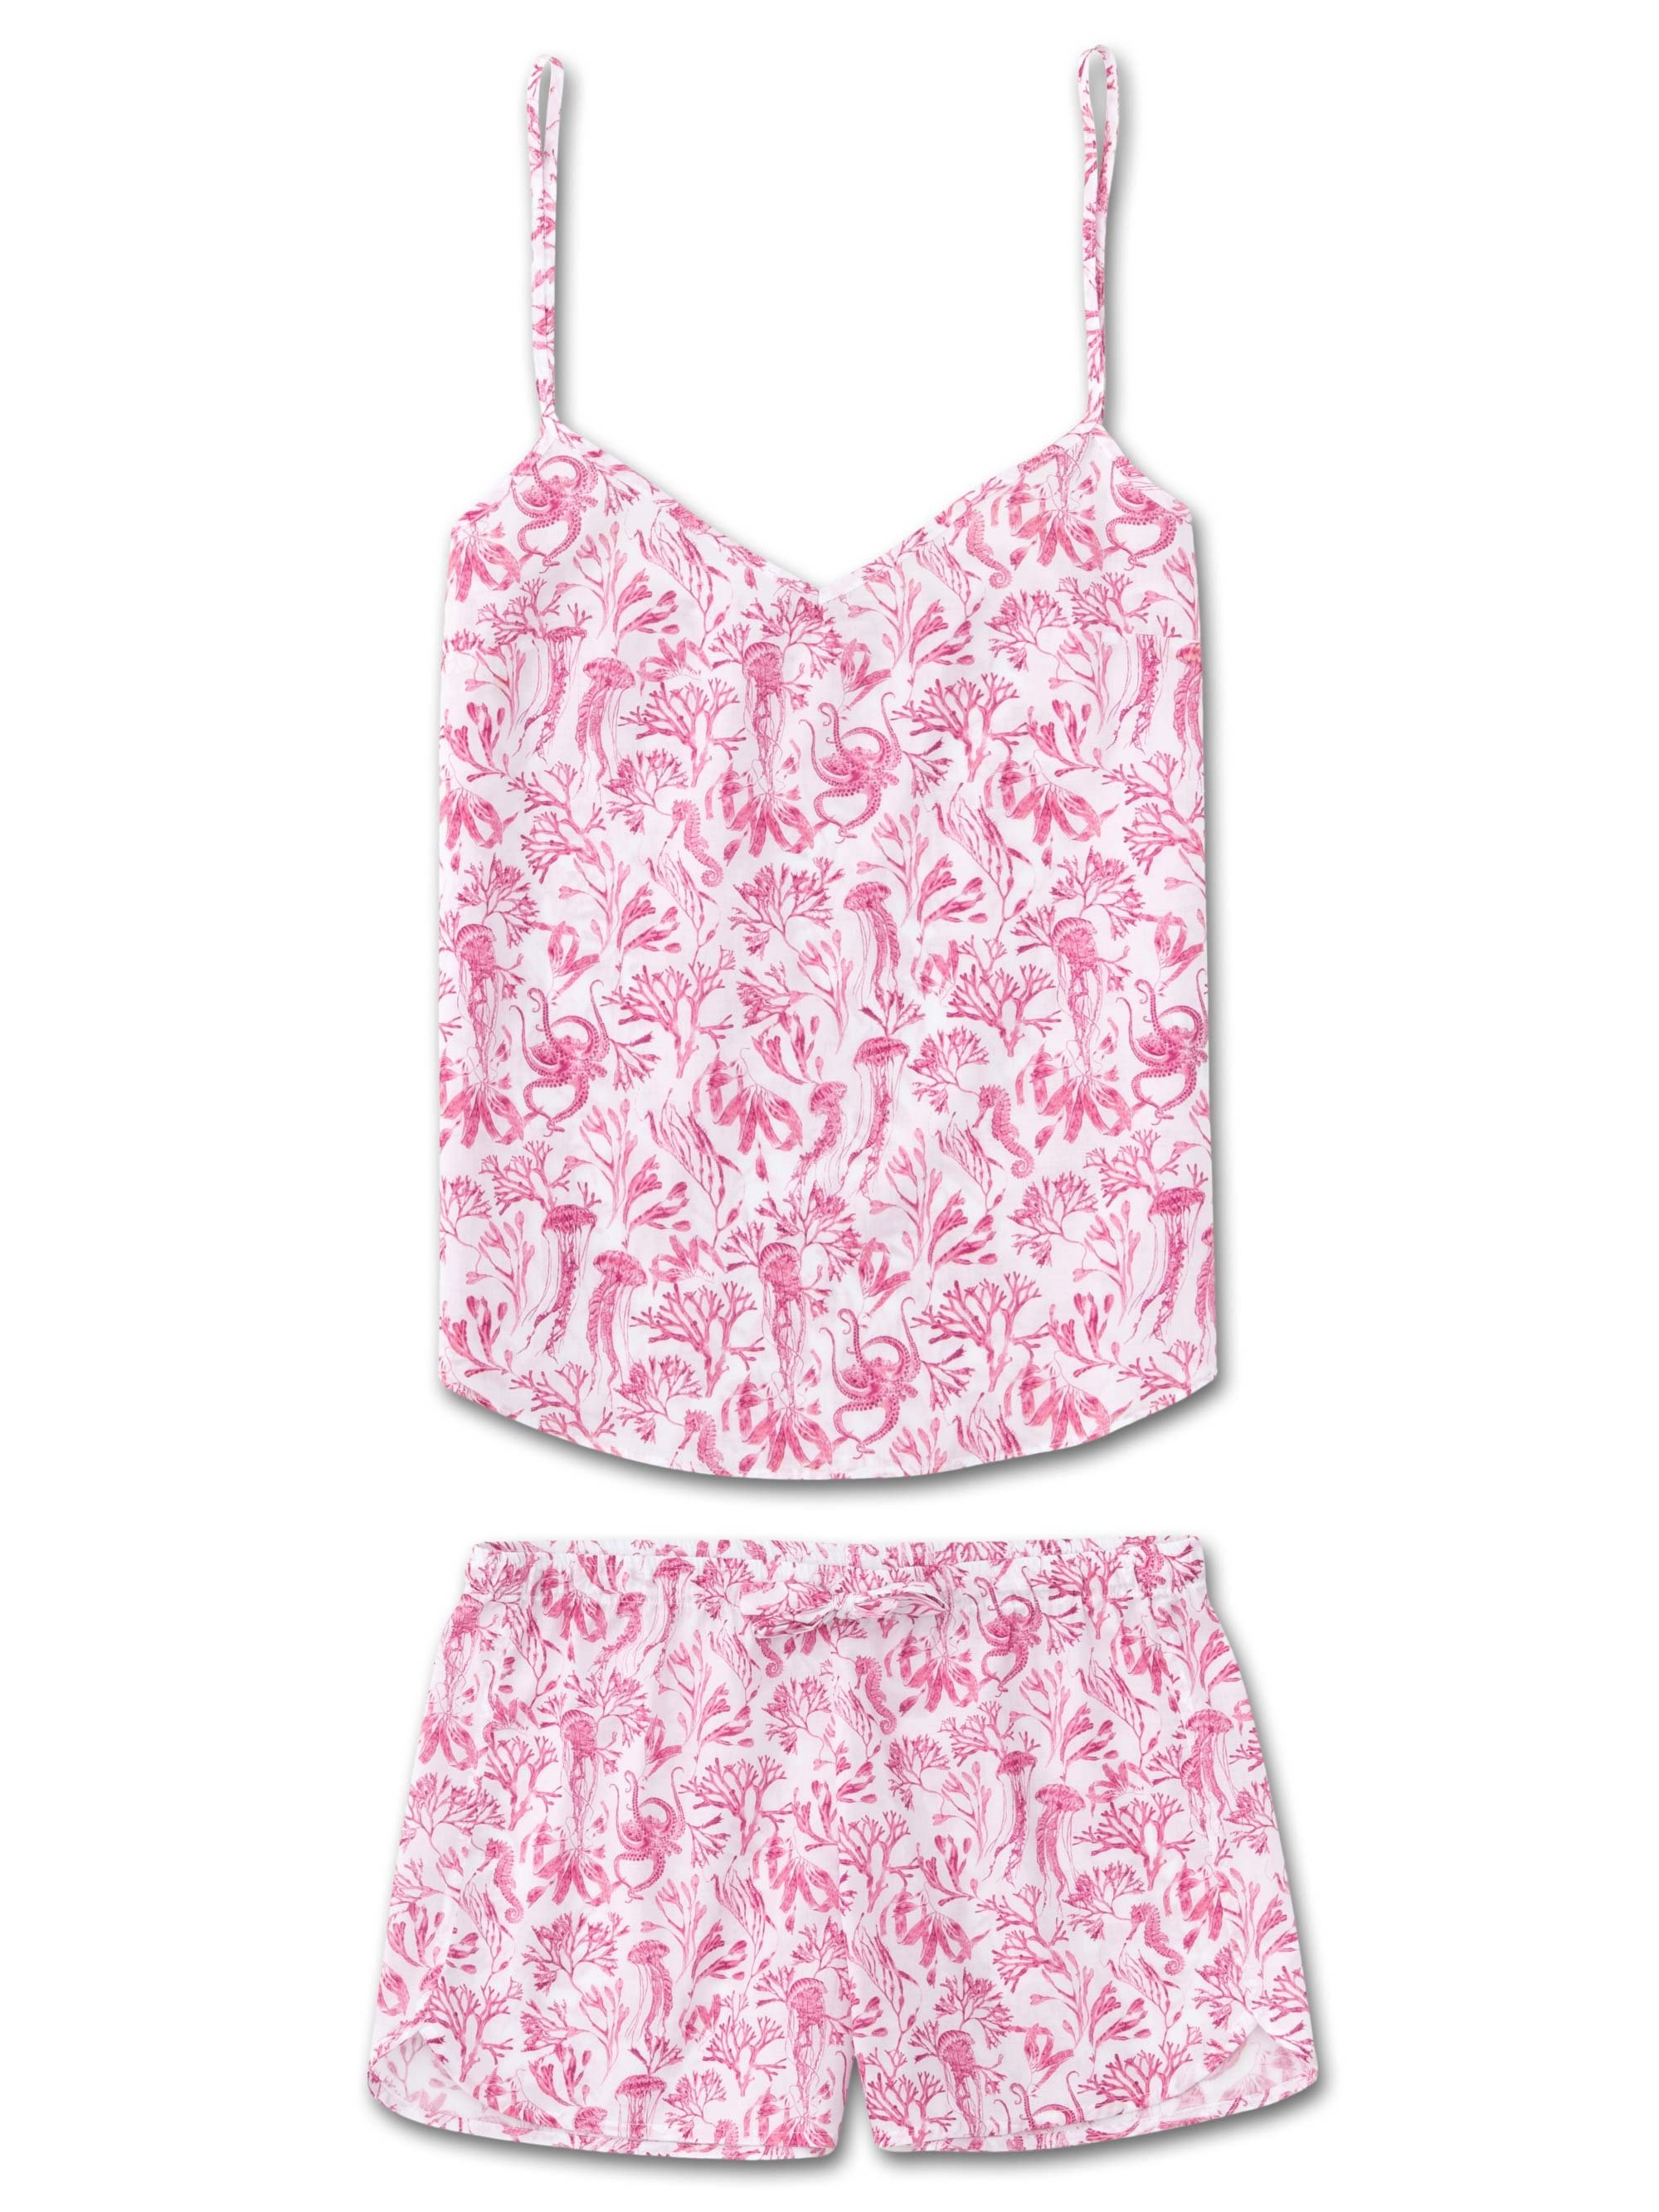 Women's Cami Short Pyjama Set Ledbury 22 Cotton Batiste Pink